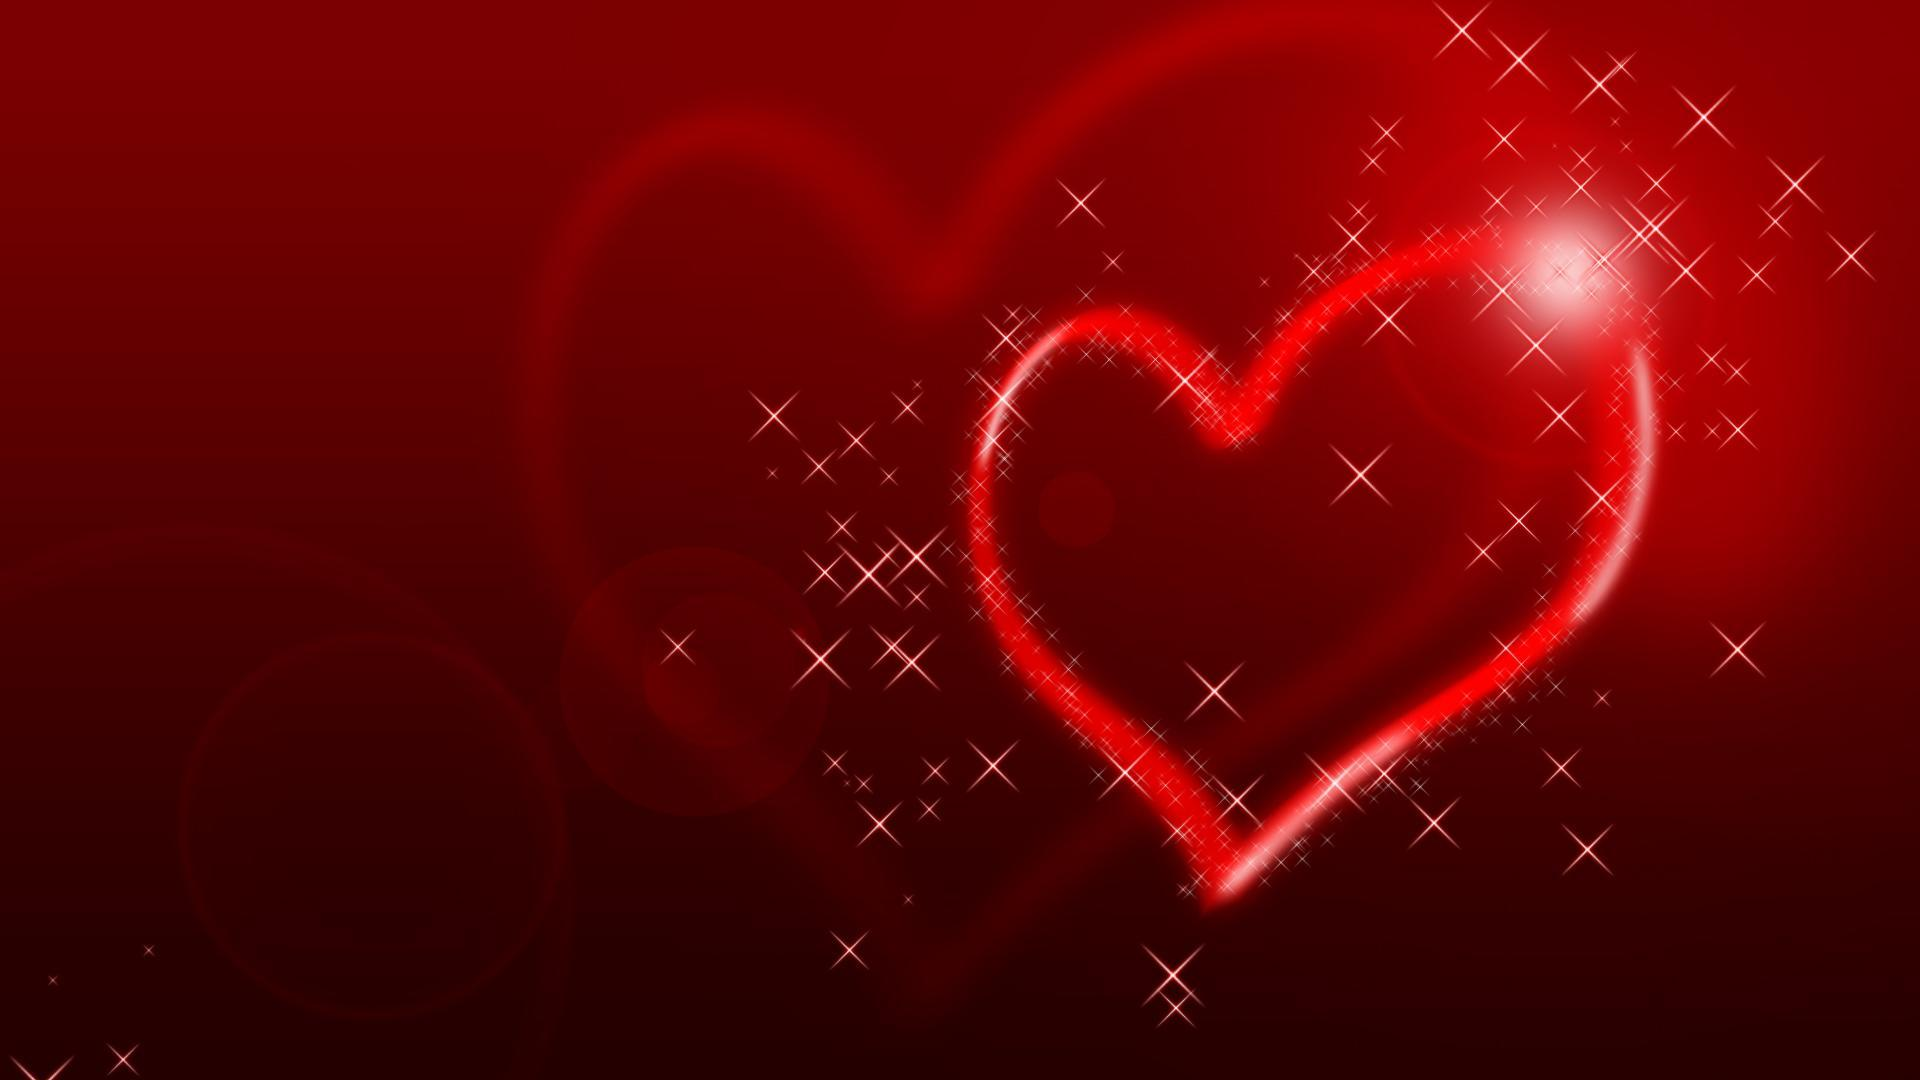 Love Wallpaper Wallpaper cave : Red Love Wallpapers - Wallpaper cave